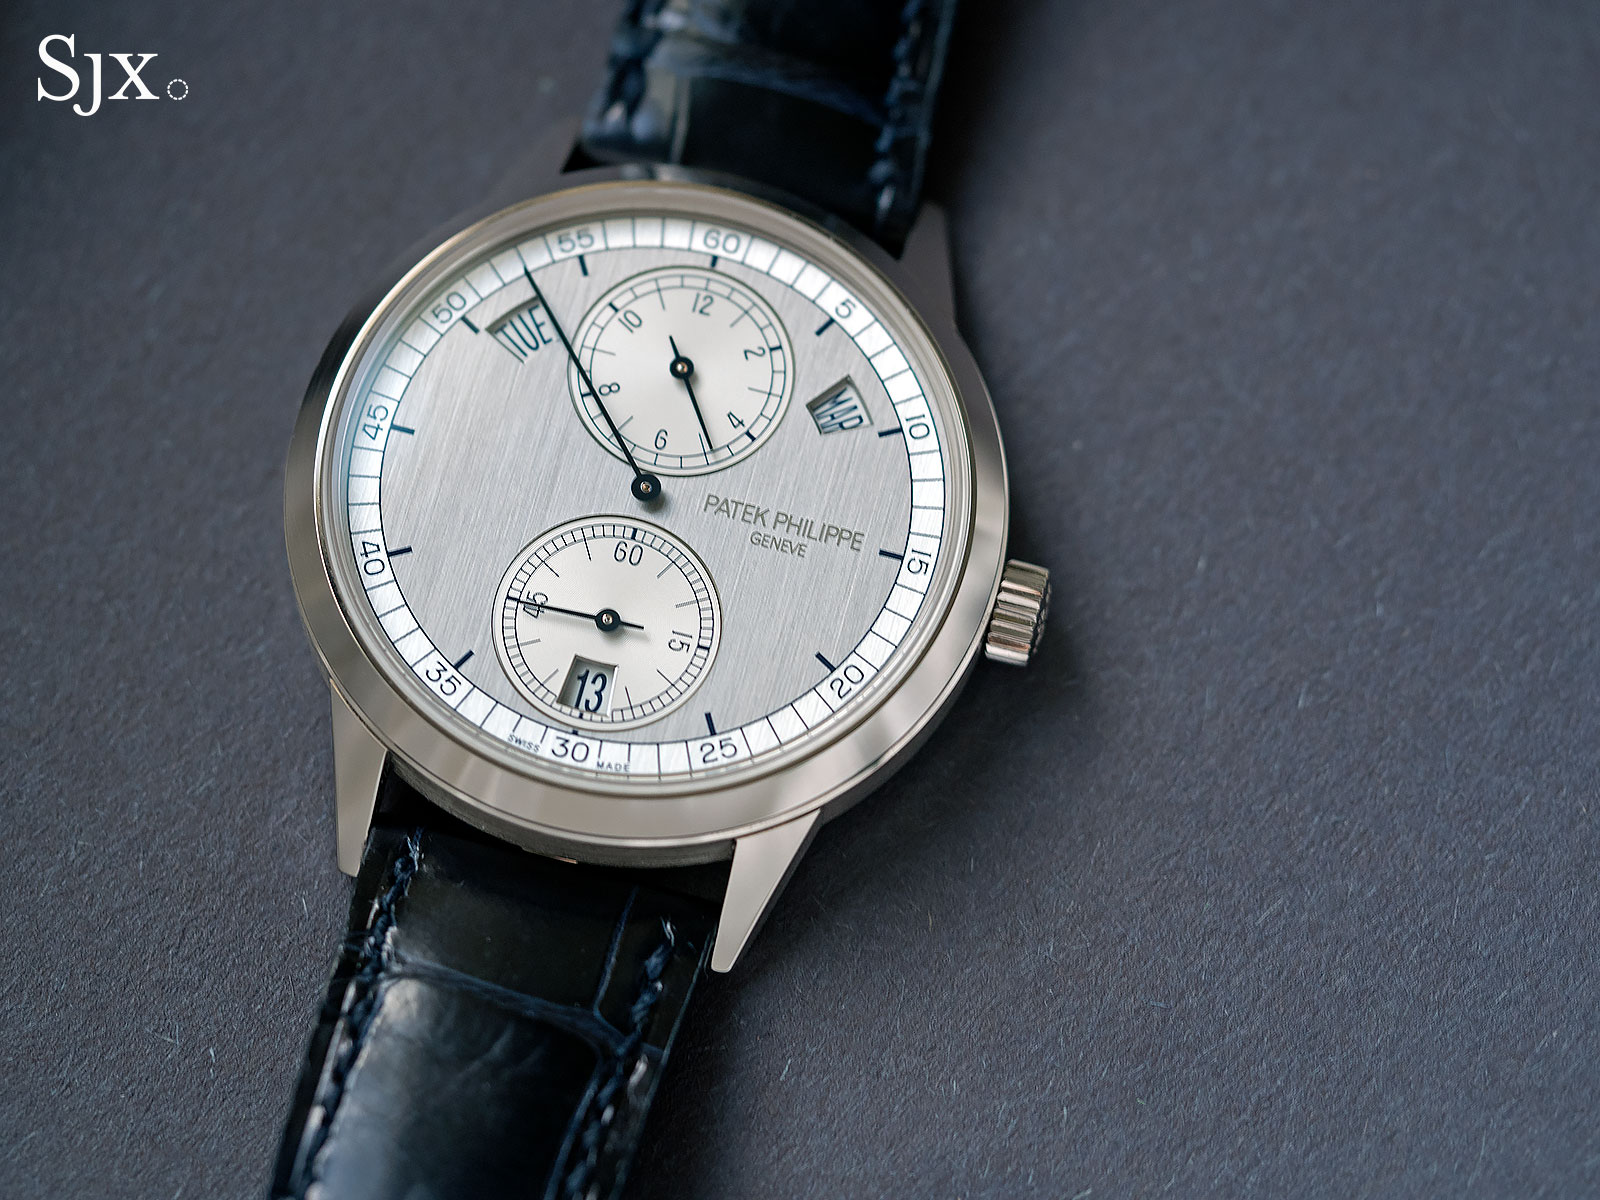 Patek Philippe 5235G regulator 2